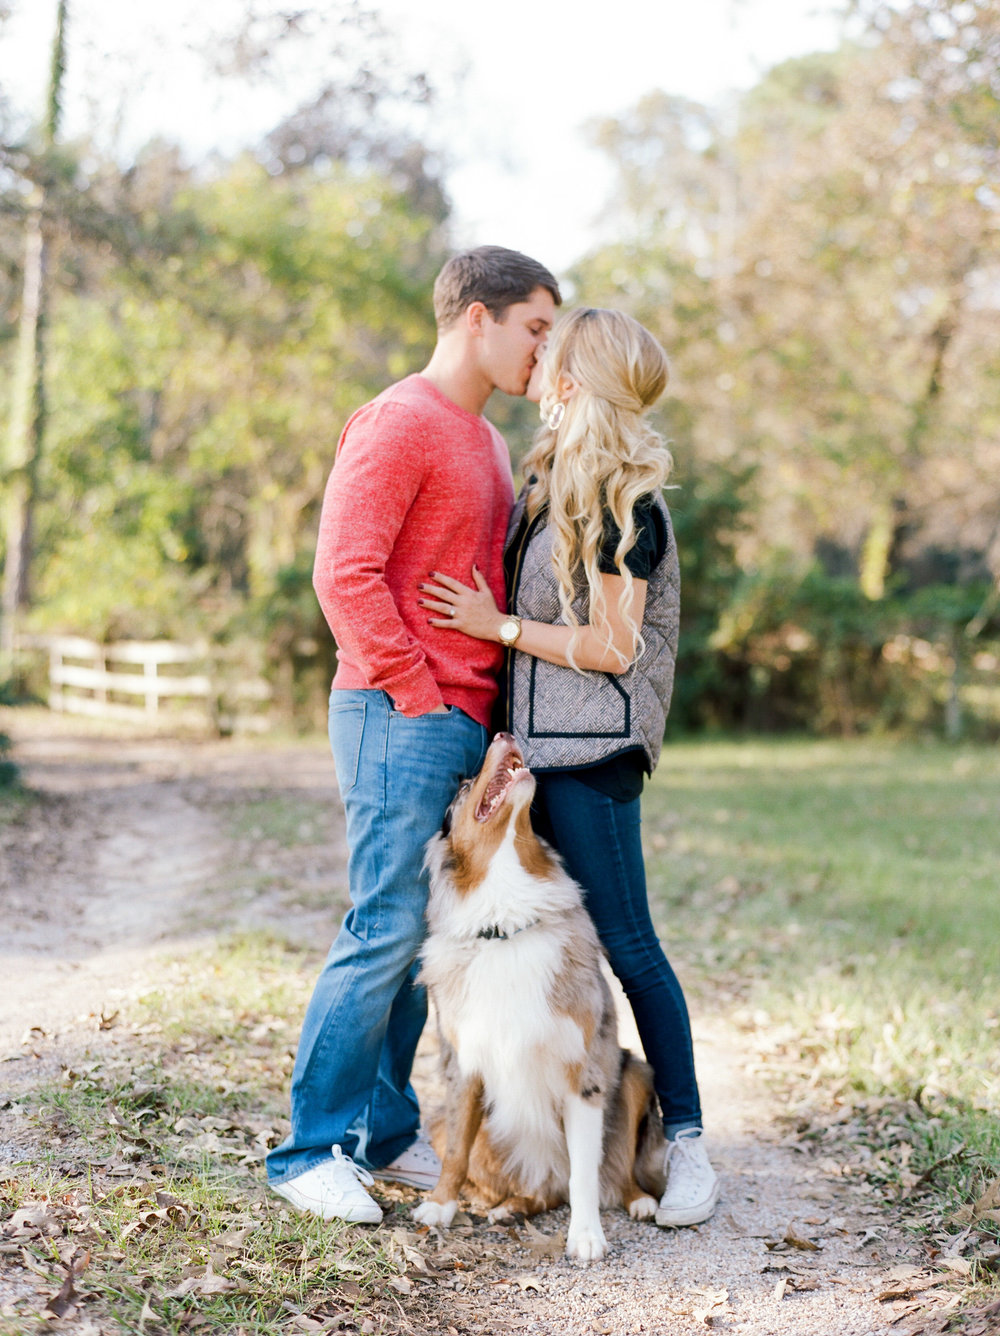 houston-wedding-photographer-engagements-engagement-session-houston-portrait-photographer-film-austin-wedding-photography-3.jpg